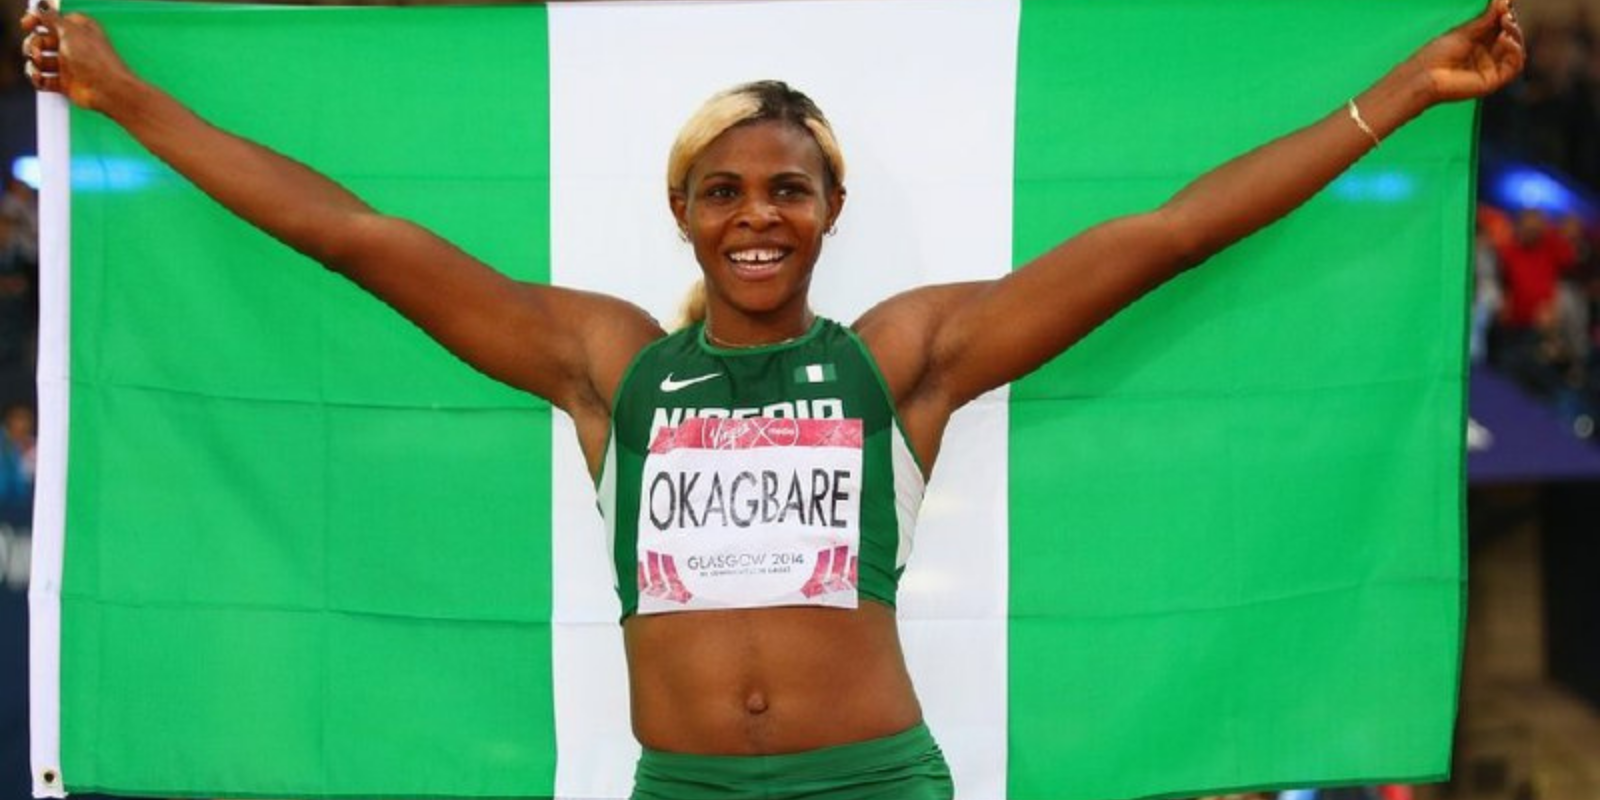 What sport does Blessing Okagbare participate in?